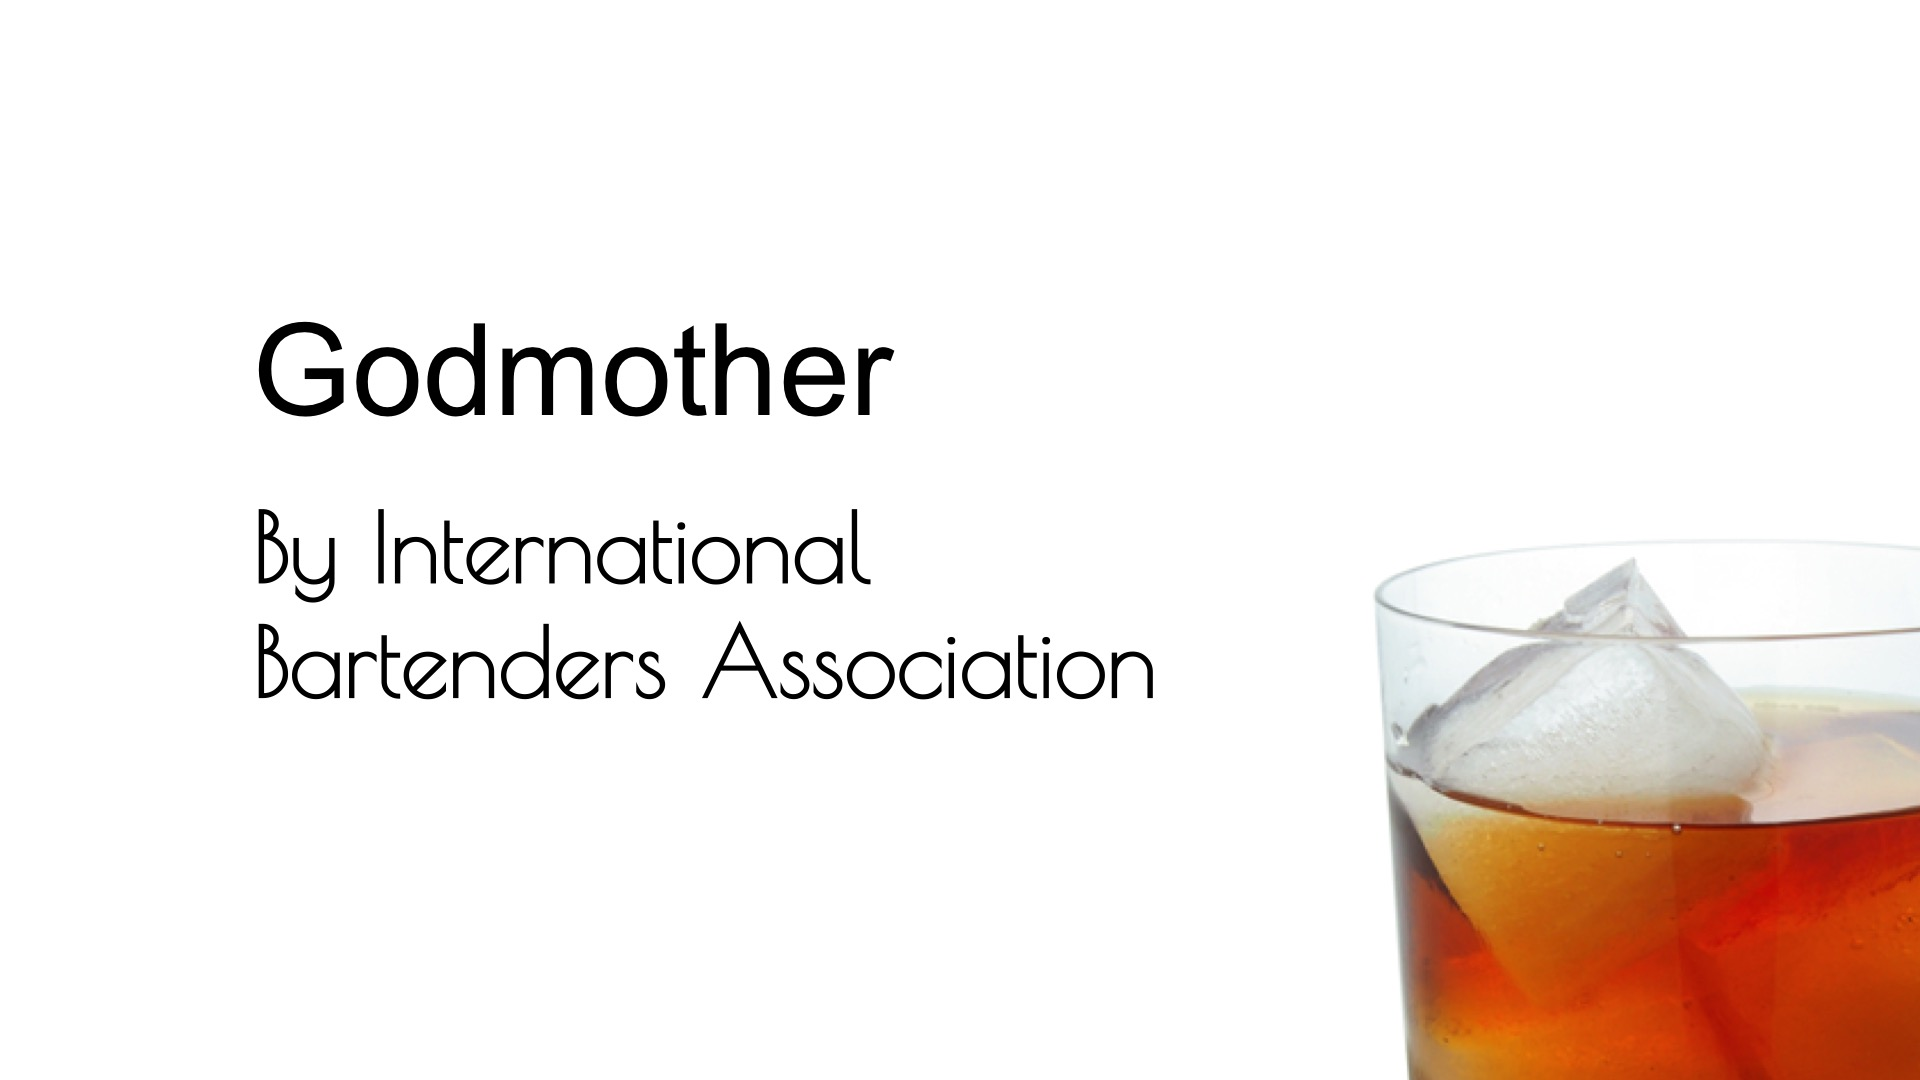 Video for Godmother (IBA) from Commonwealth Cocktails